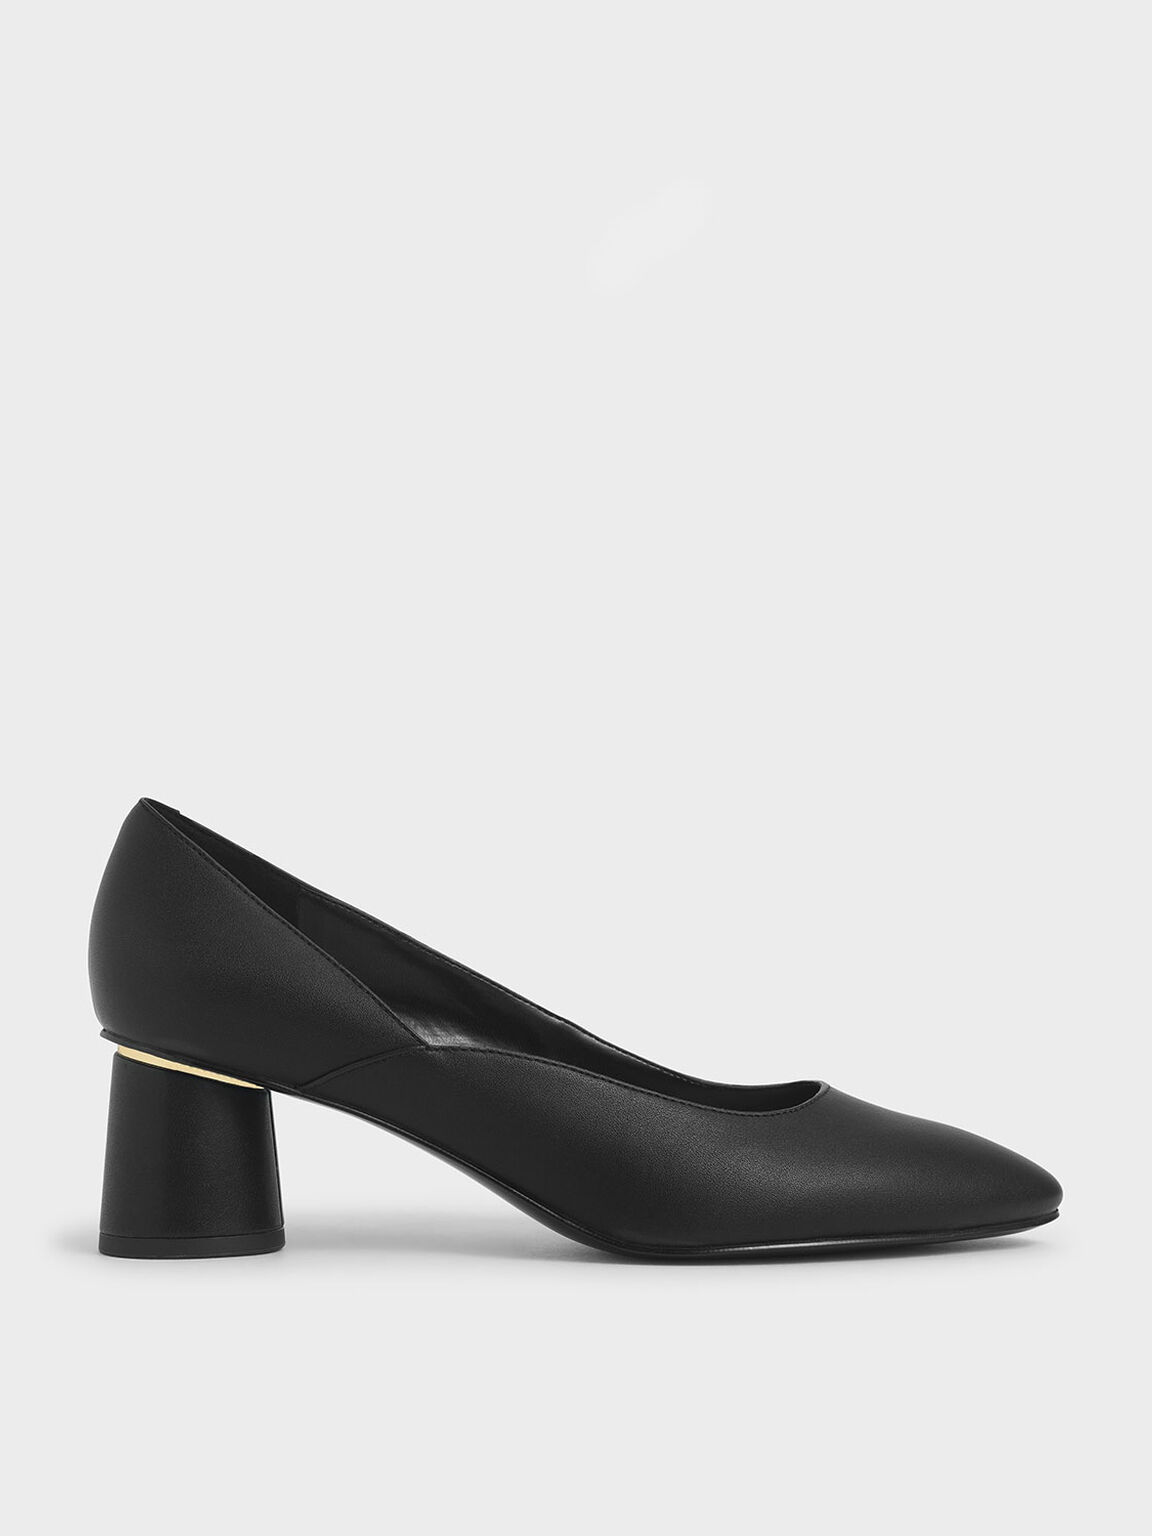 Cylindrical Heel Pumps, Black, hi-res